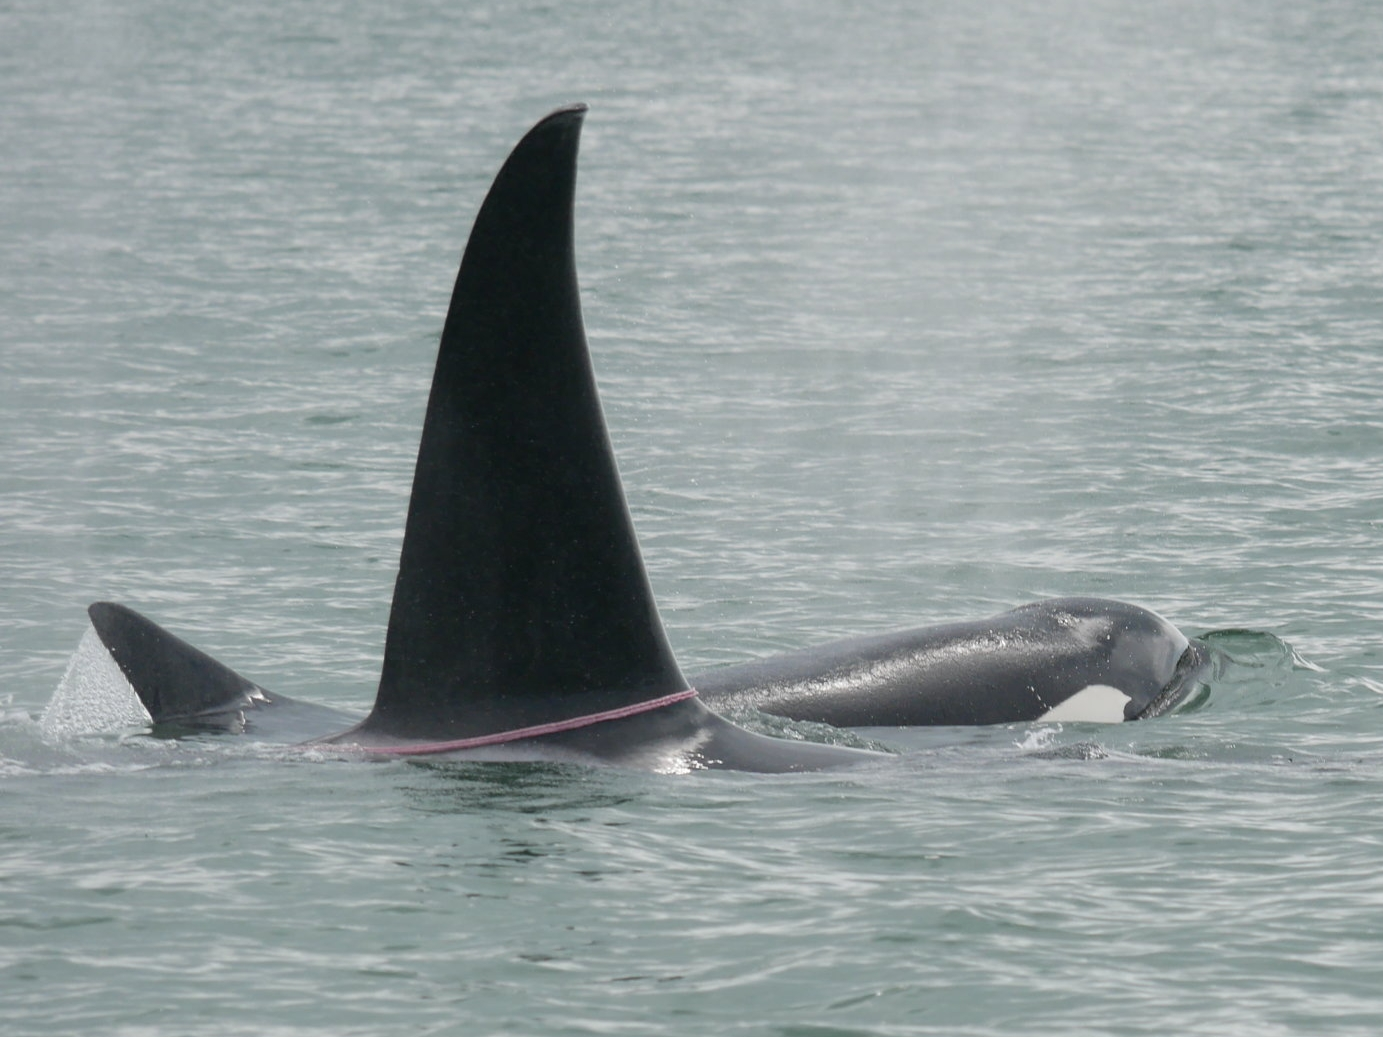 One male killer whale showing off his new intestine bling, while another swims close by. Photo by Mike Campbell.